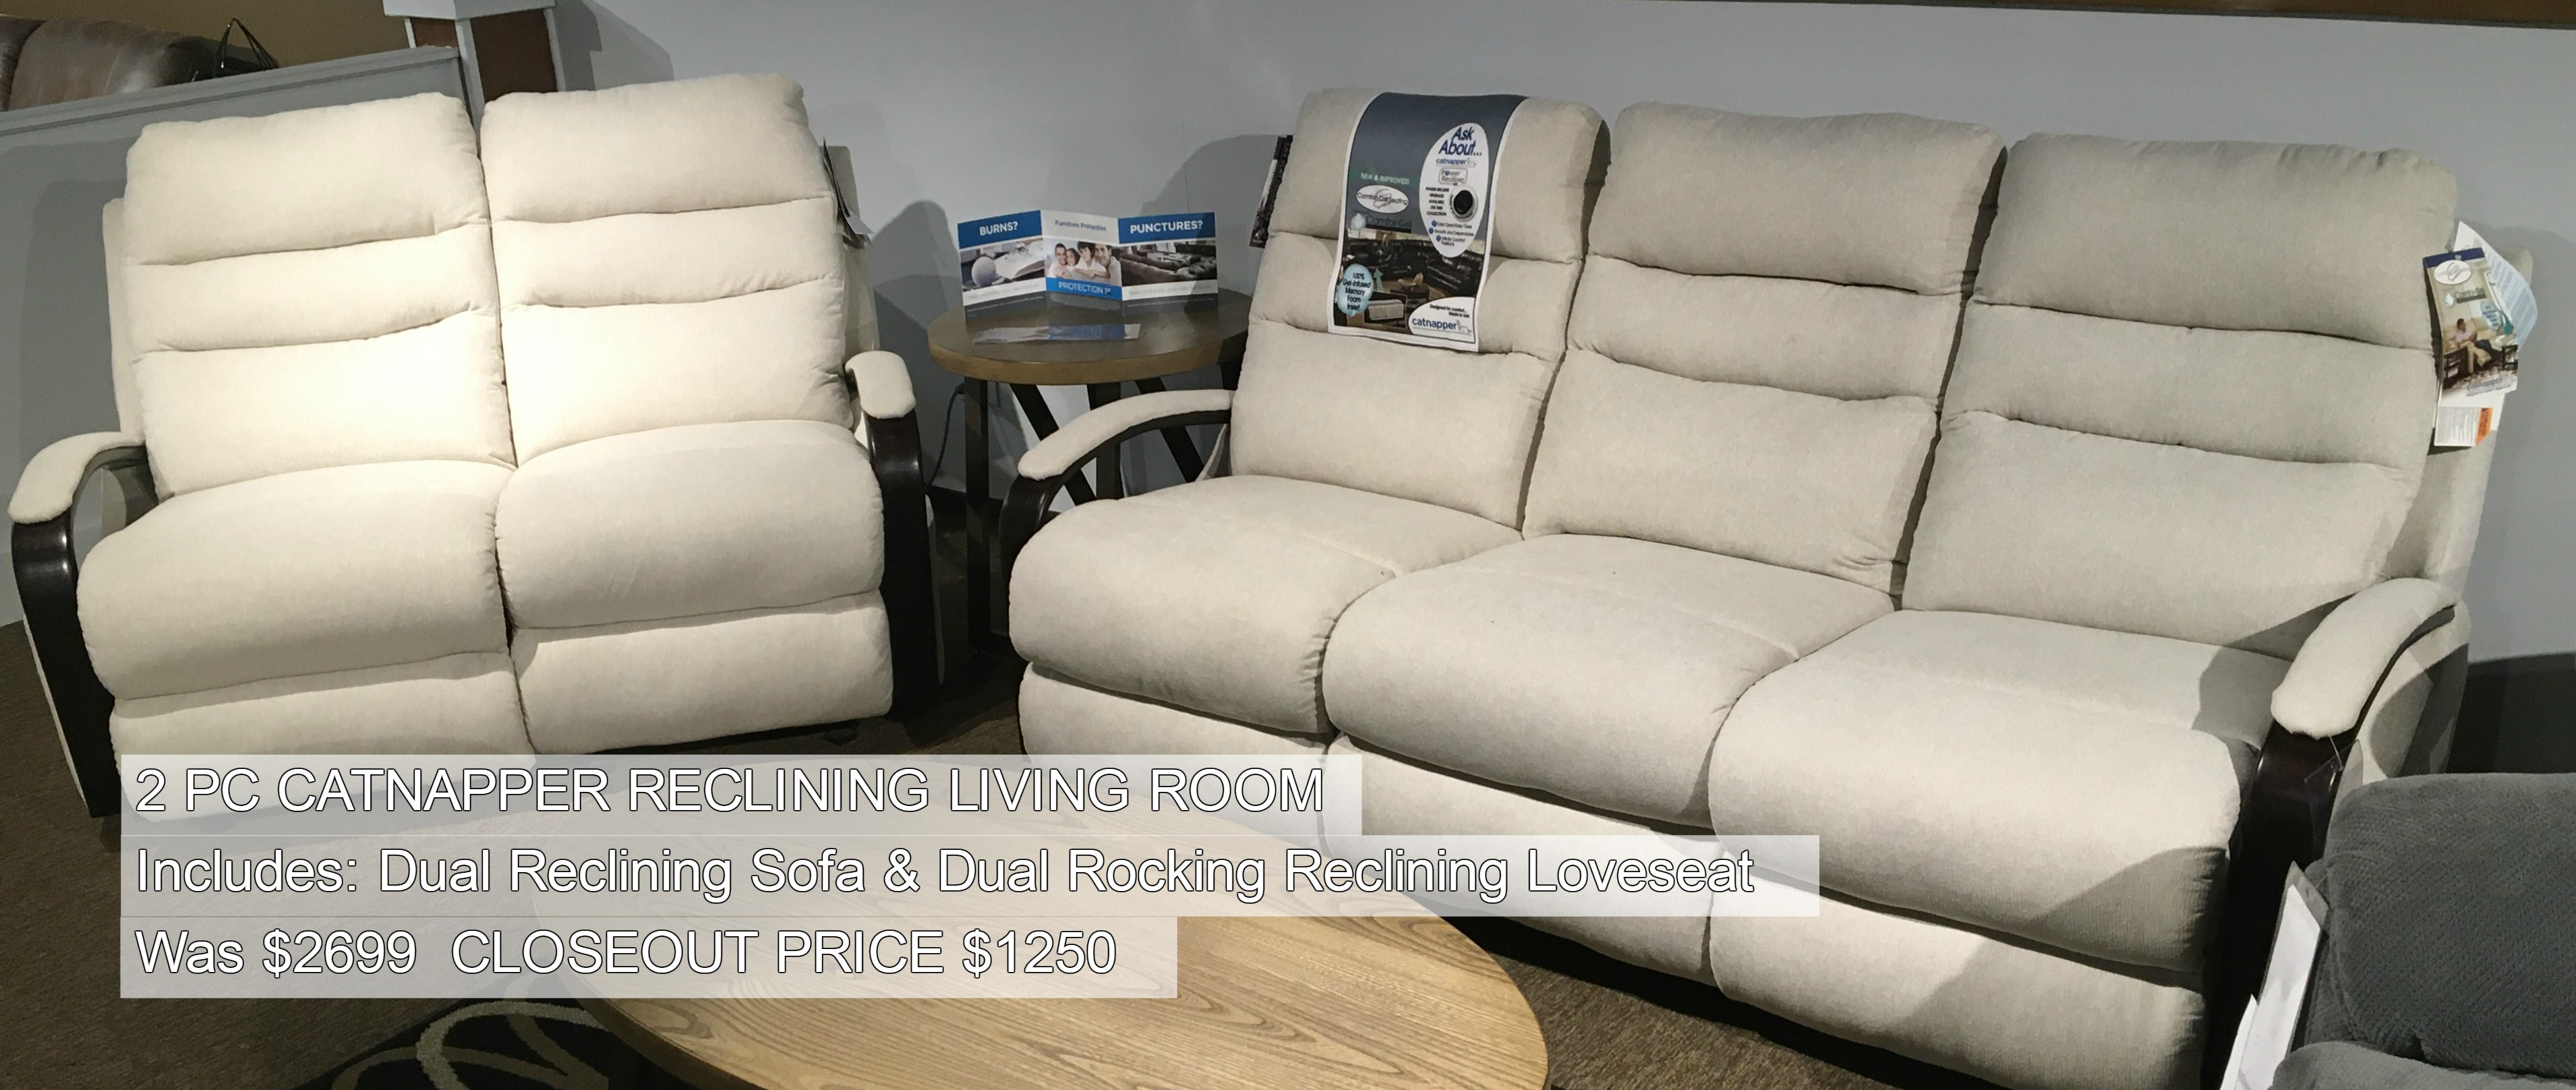 2PC Catnapper Reclining Living Room Only $1250